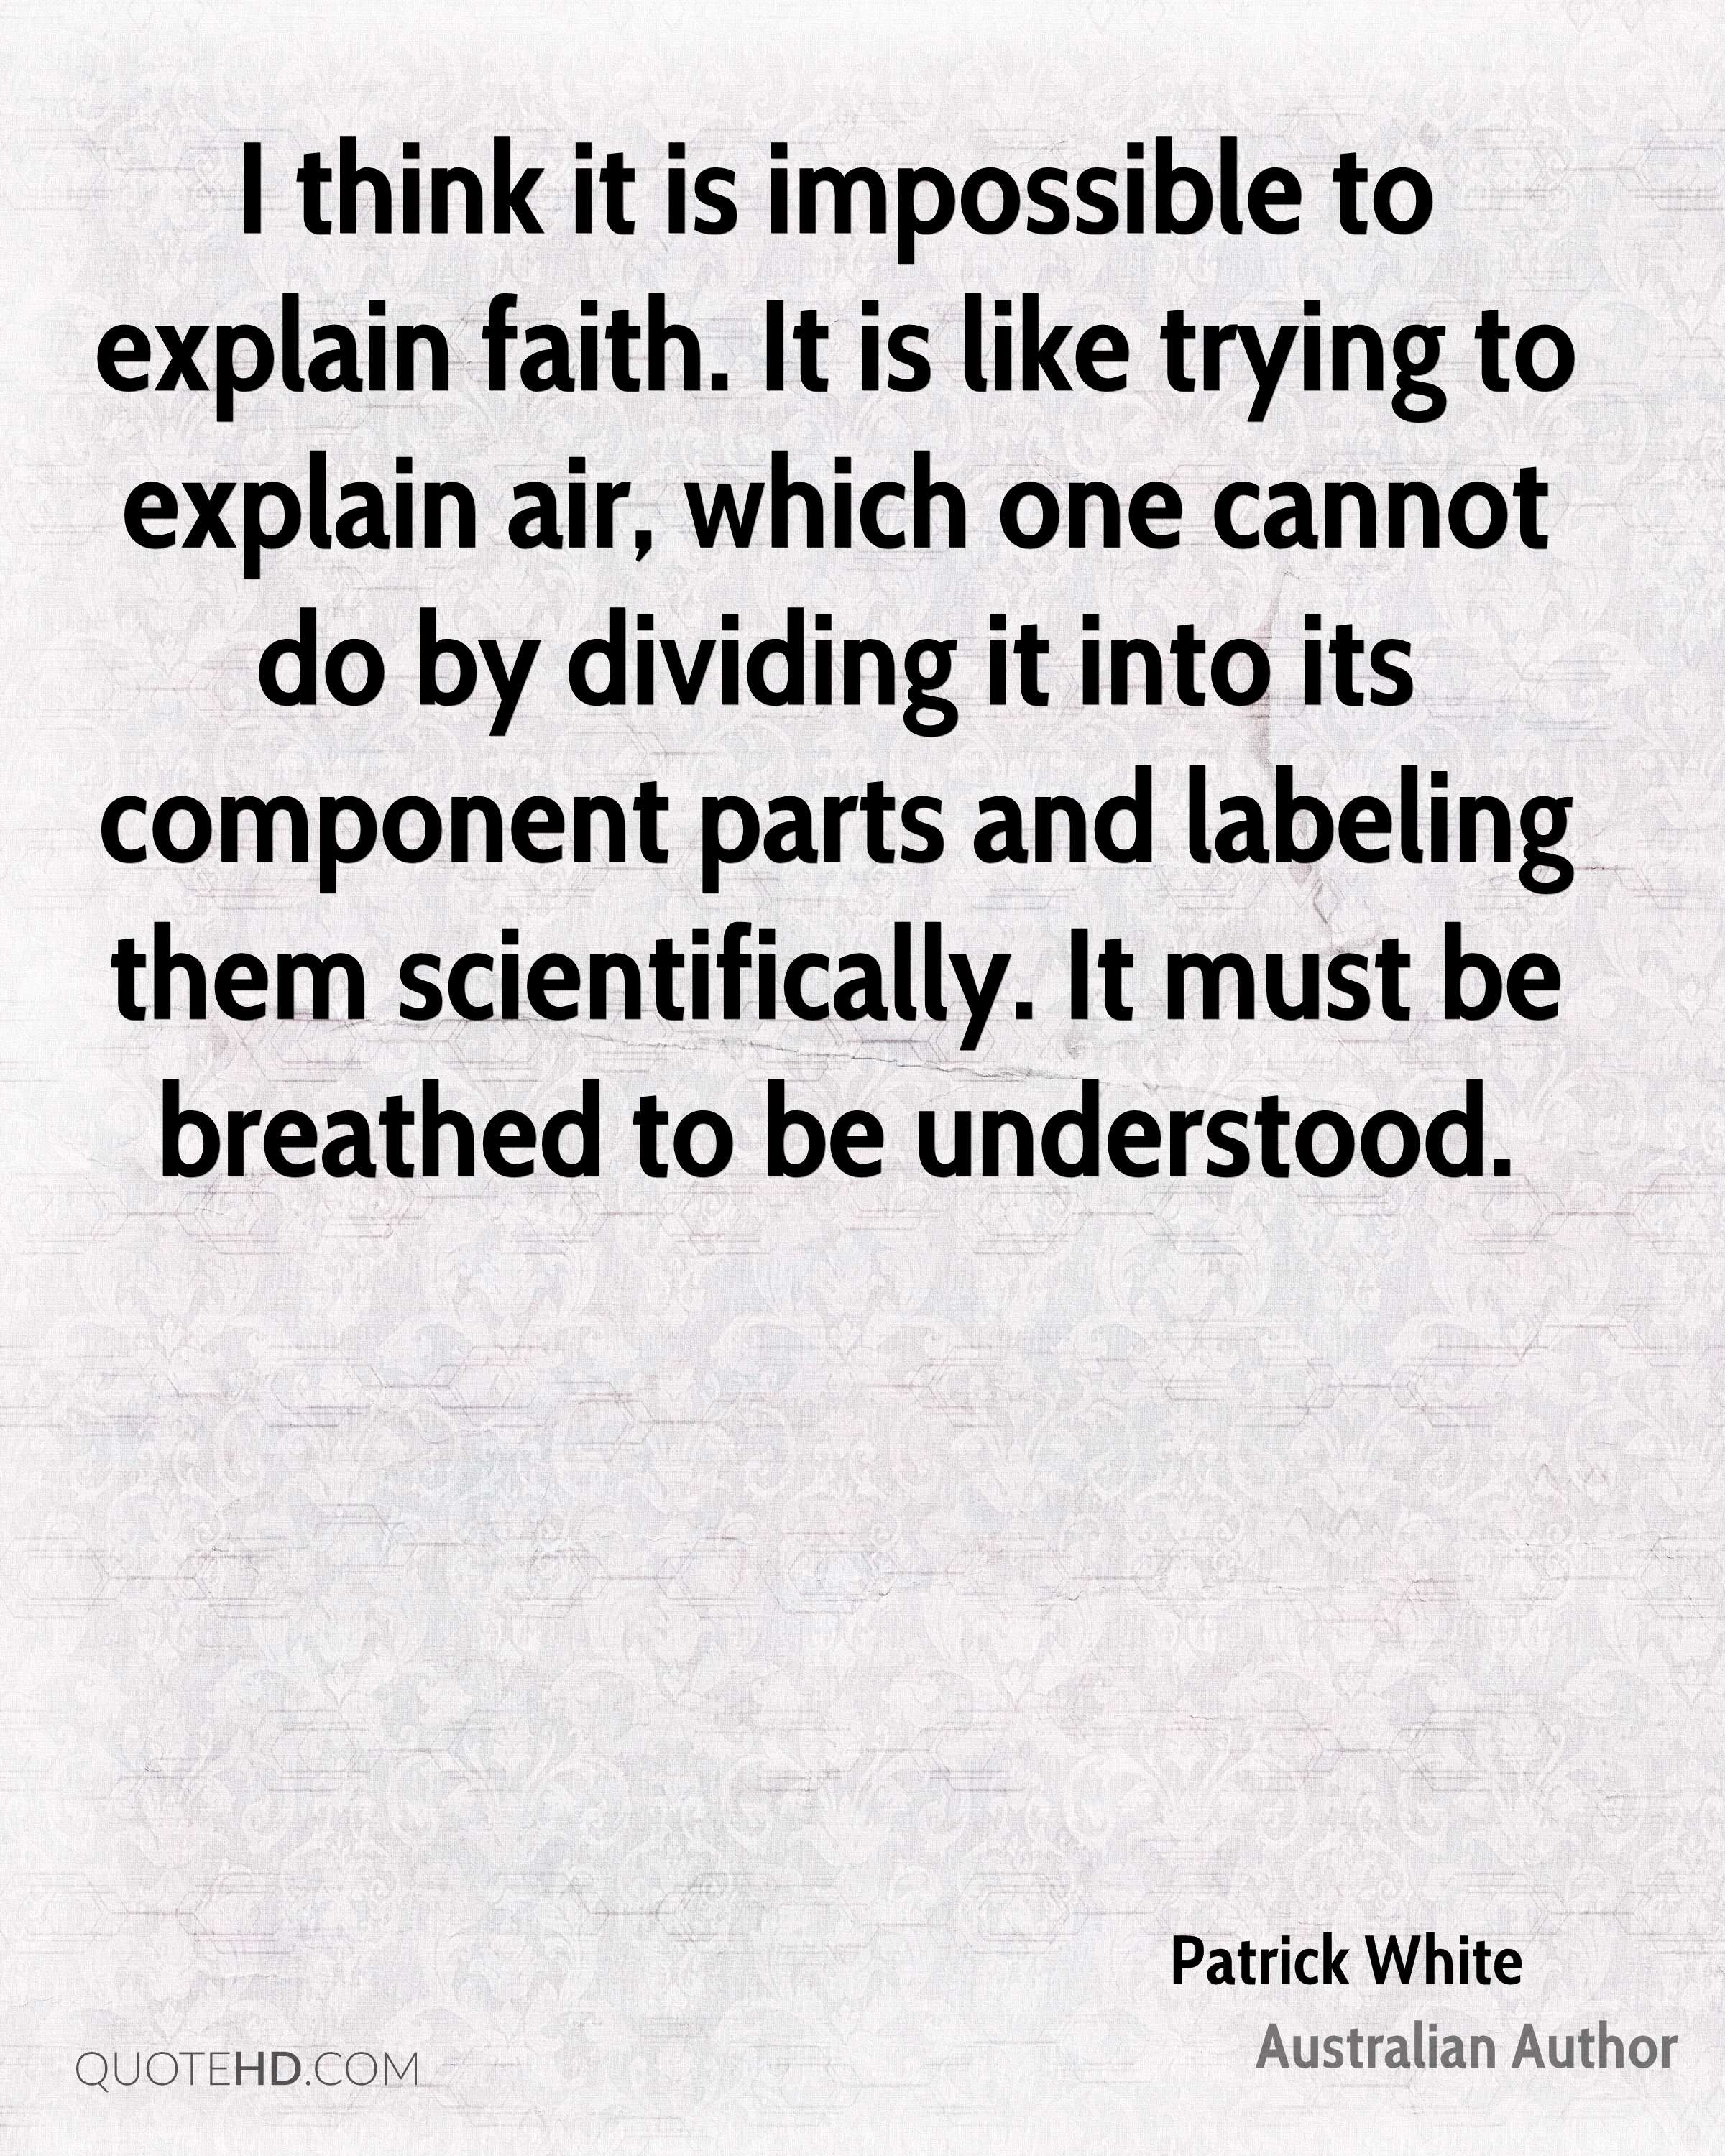 I think it is impossible to explain faith. It is like trying to explain air, which one cannot do by dividing it into its component parts and labeling them scientifically. It must be breathed to be understood.